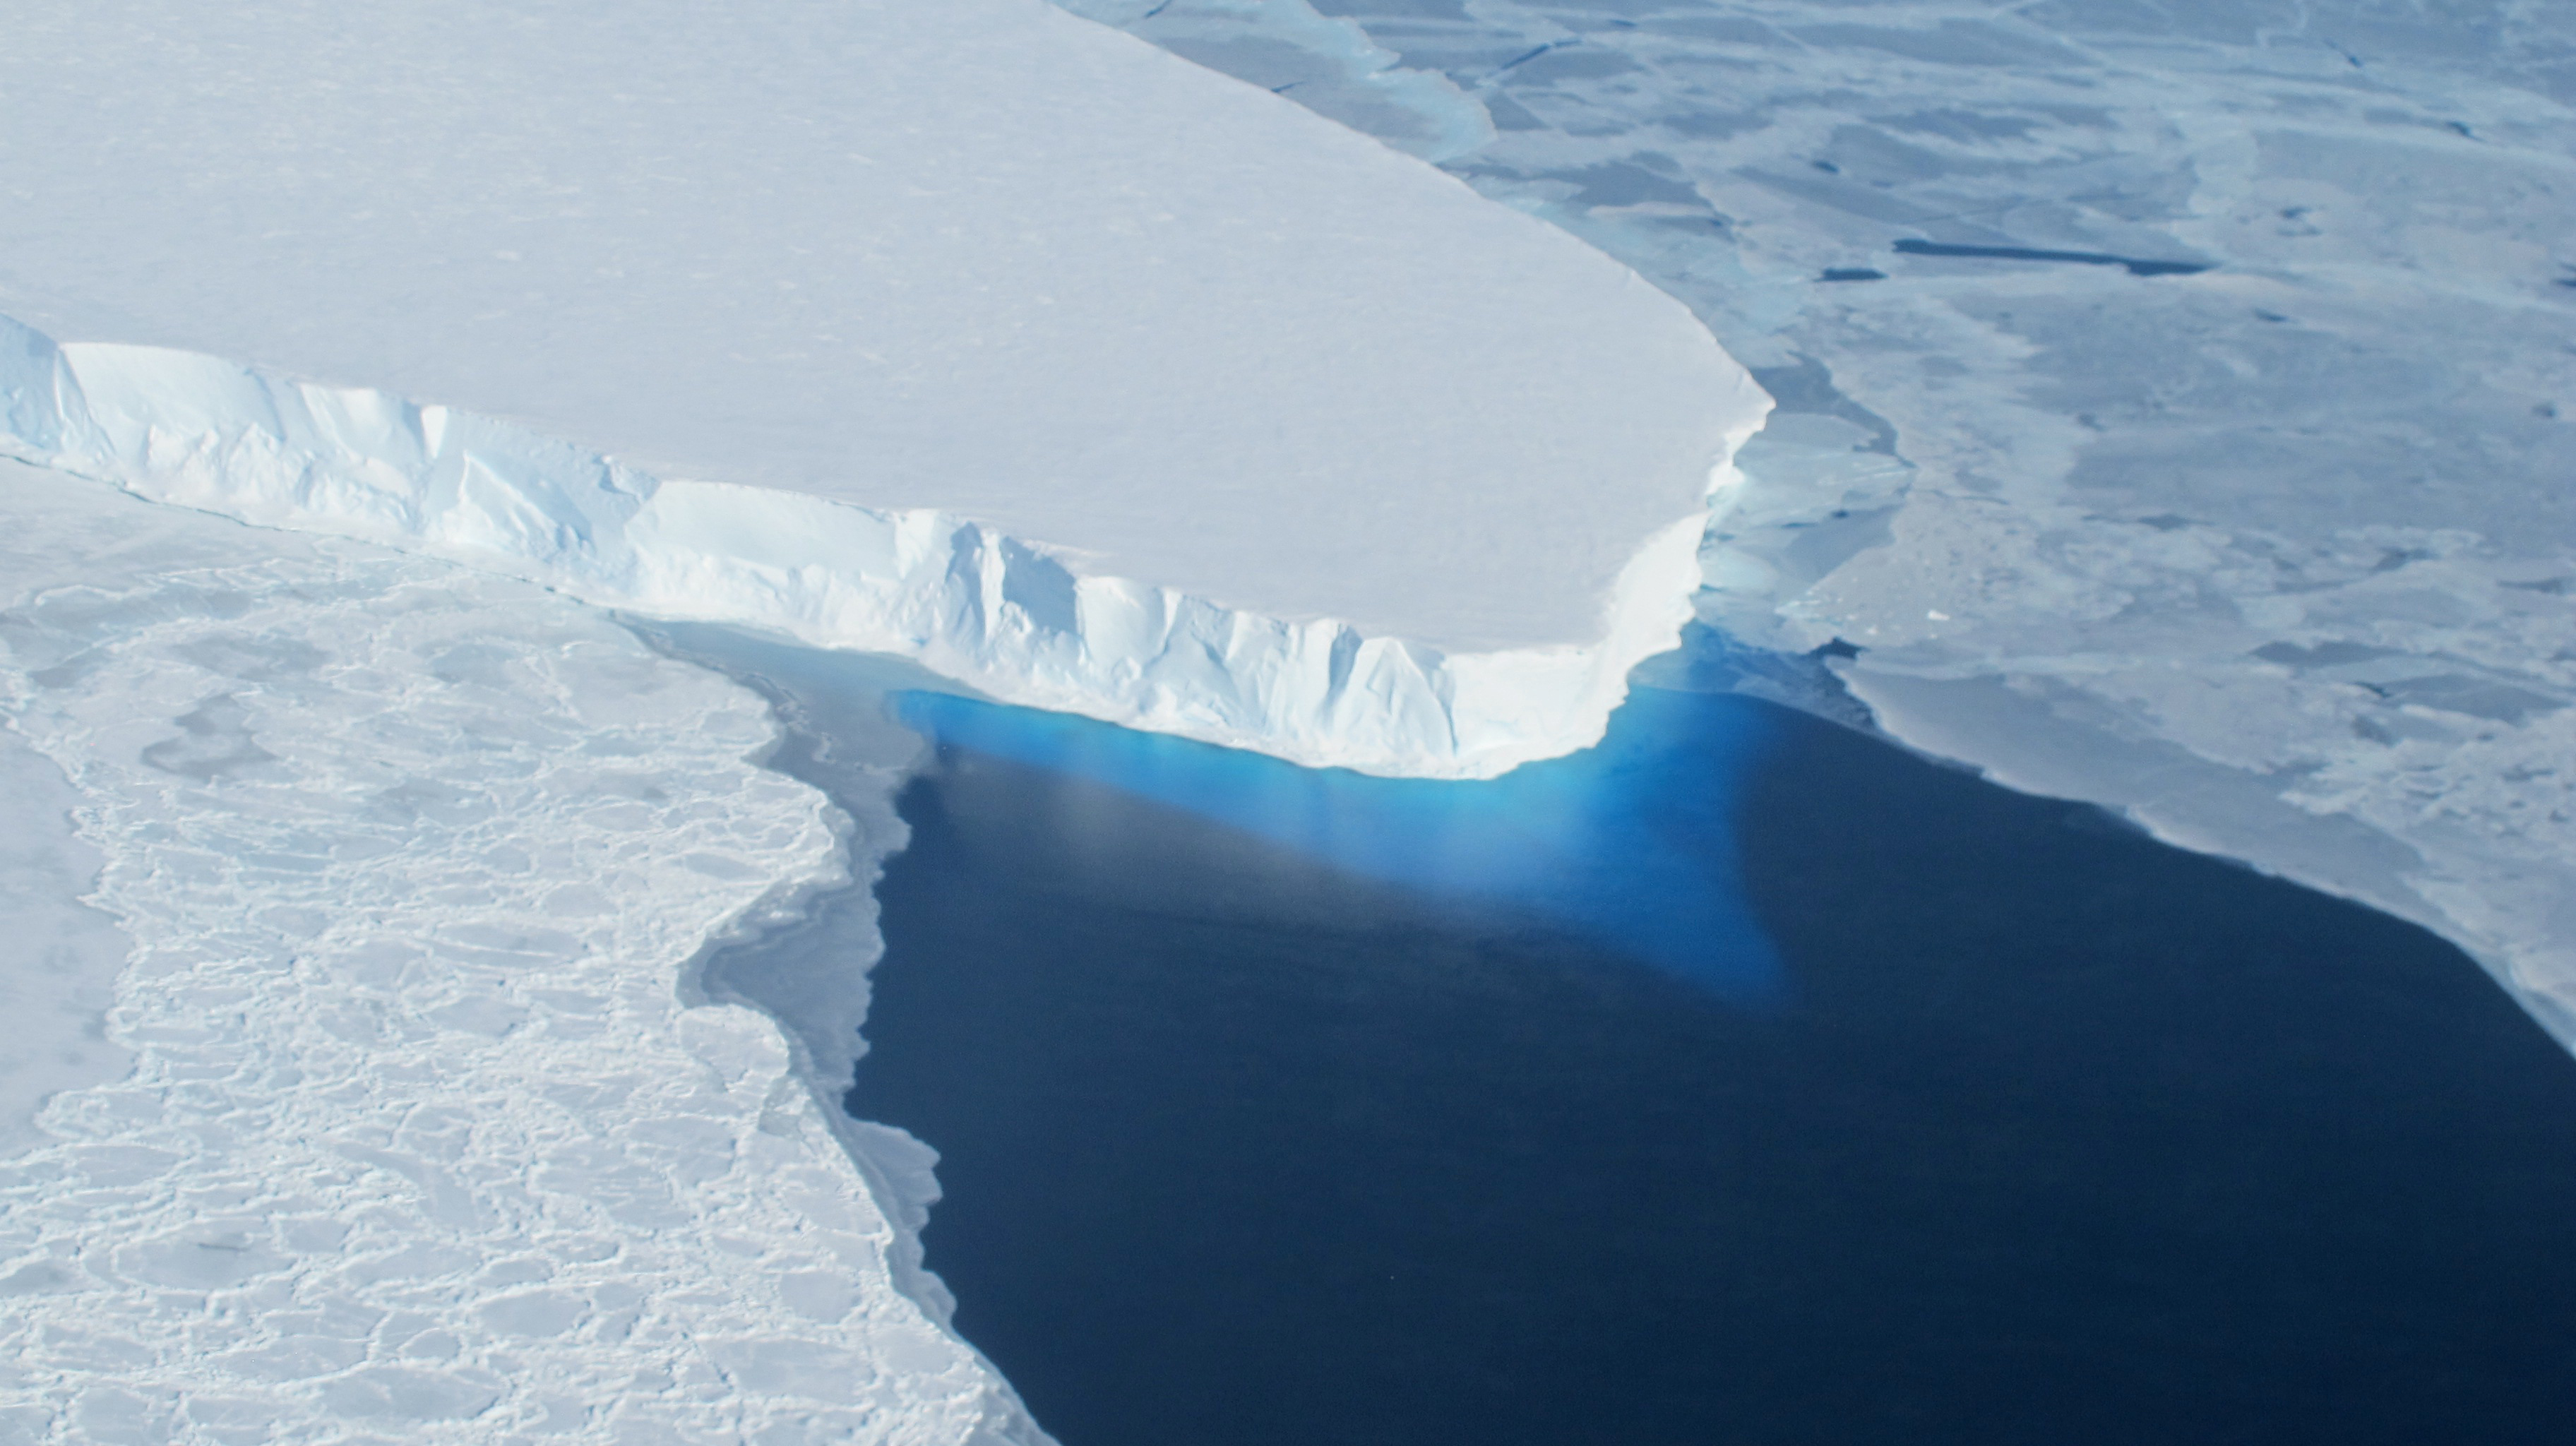 The Thwaites Glacier, shown here as a massive tongue of ice jutting out over blue water.